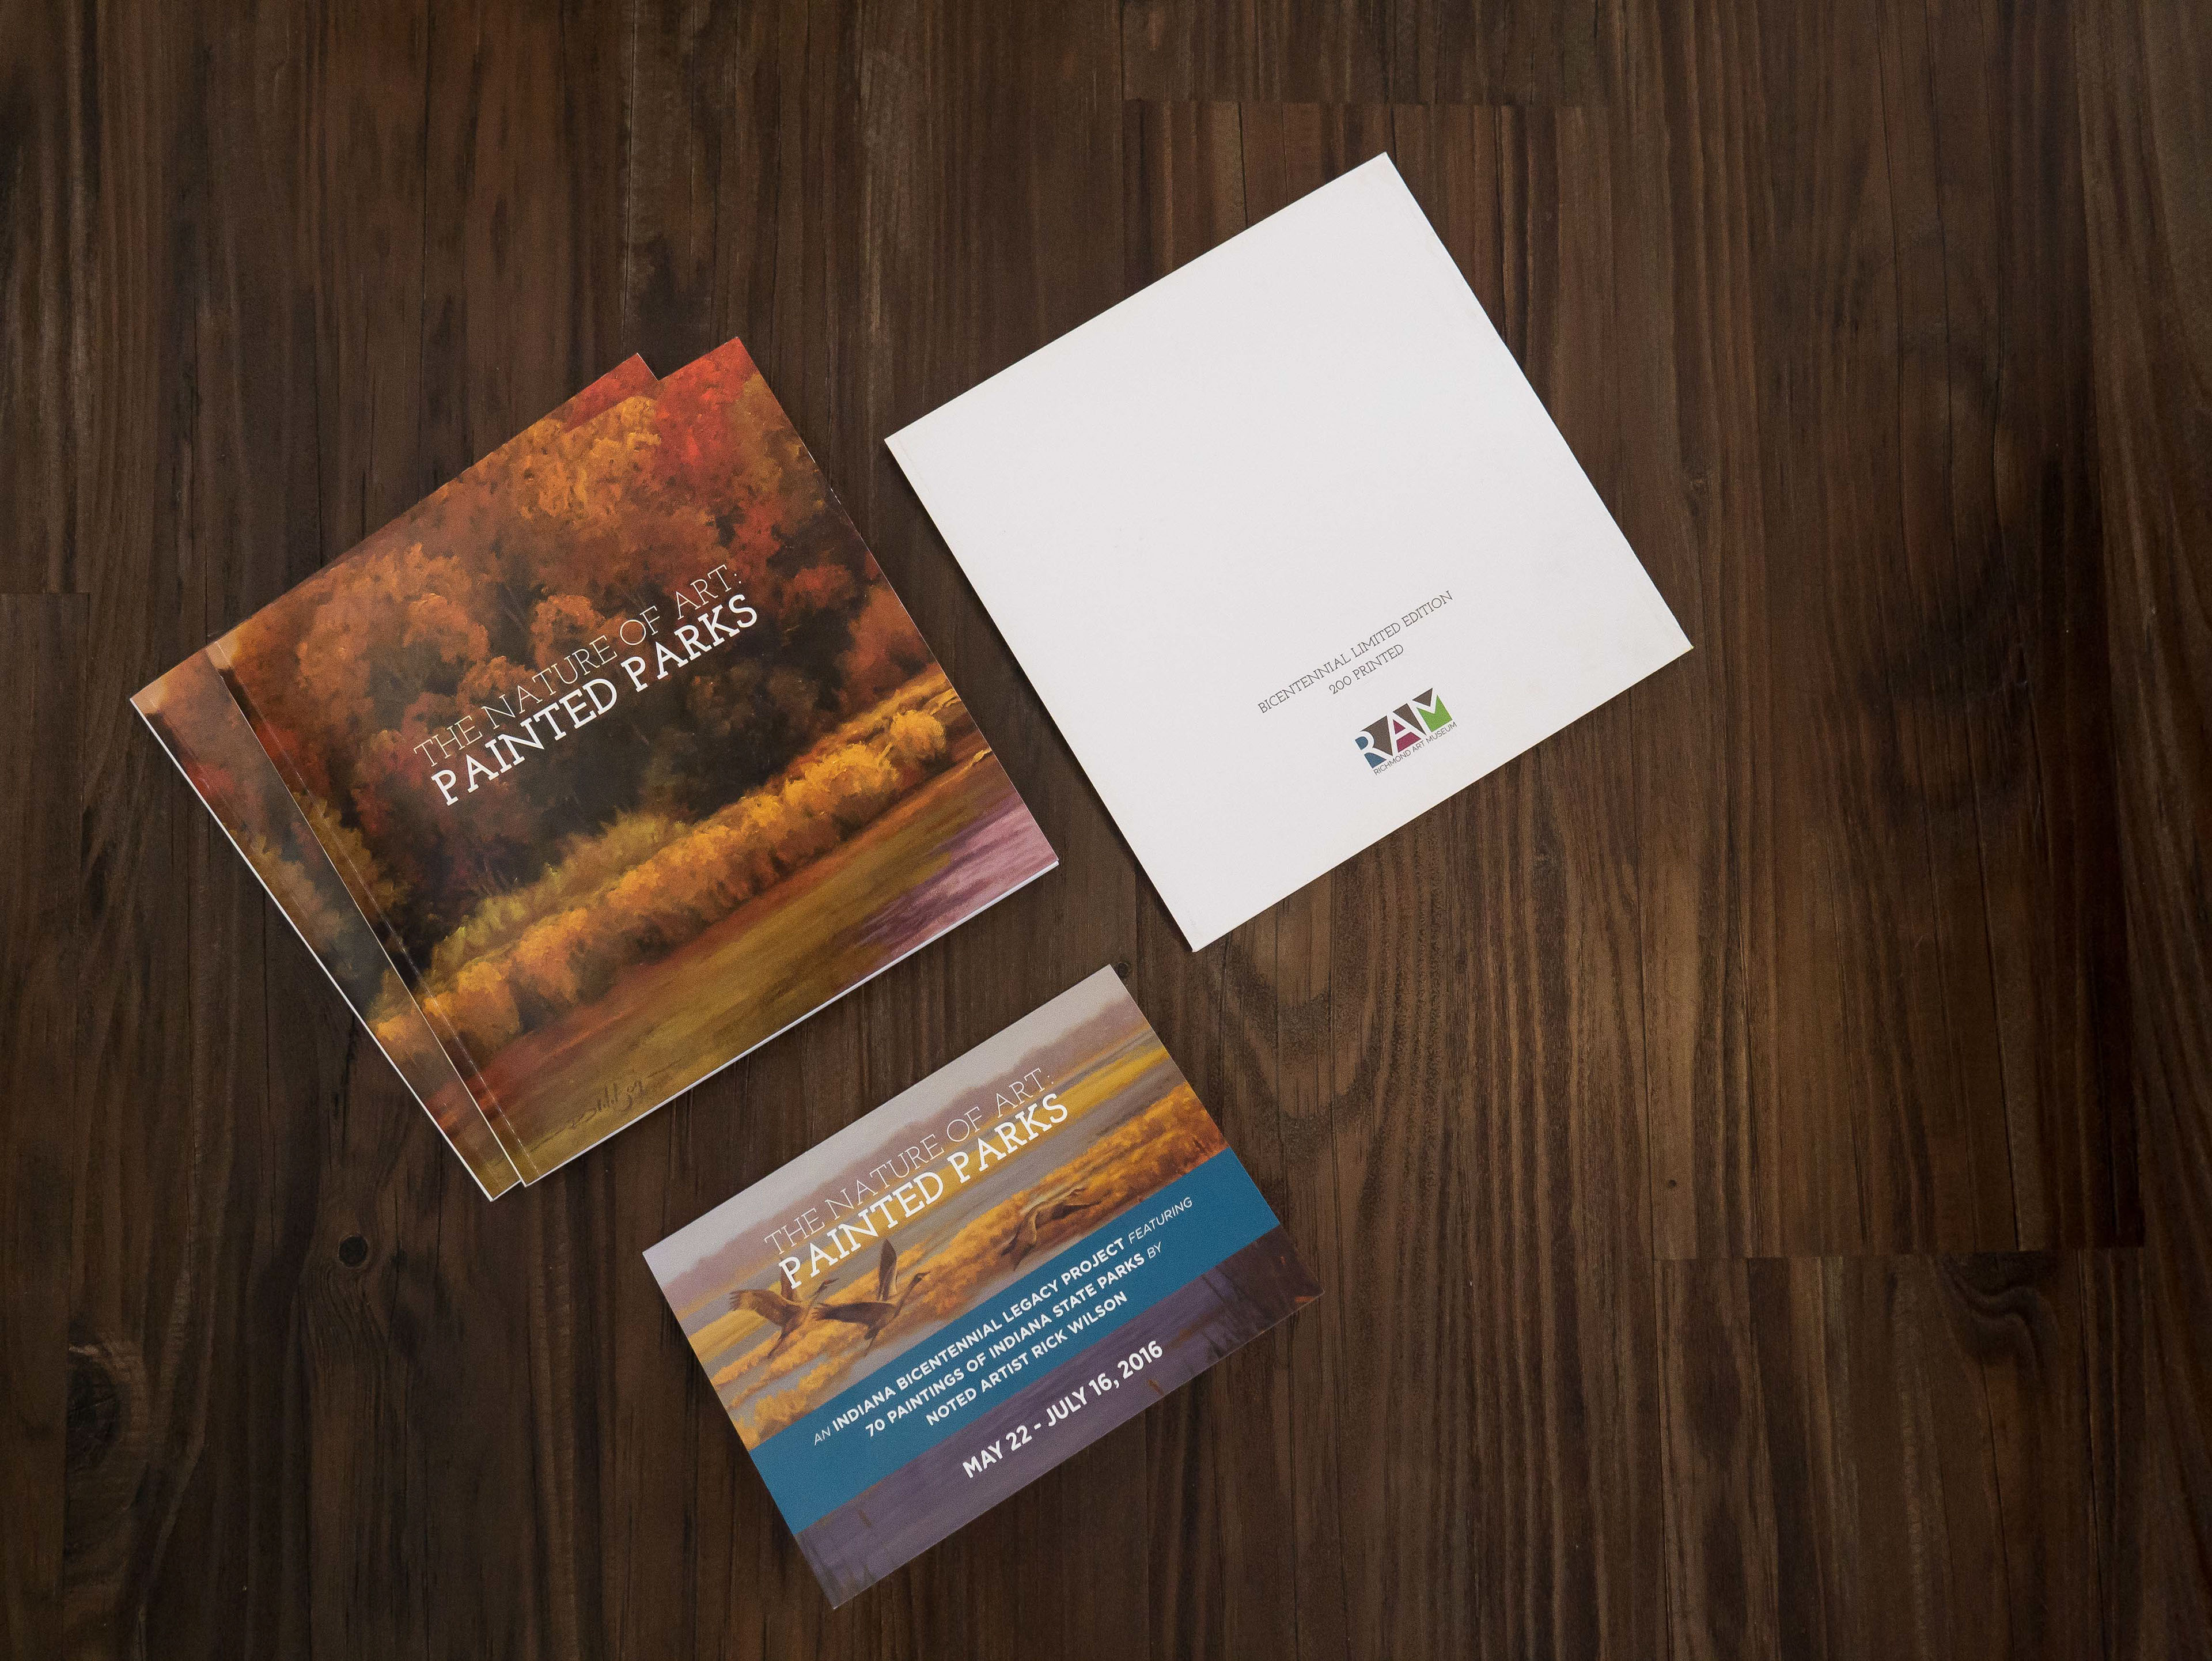 Savannah snyder book design print collateral project artists book design and print collateral for the nature of art painted parks exhibit location richmond in equipment adobe illustrator reheart Images